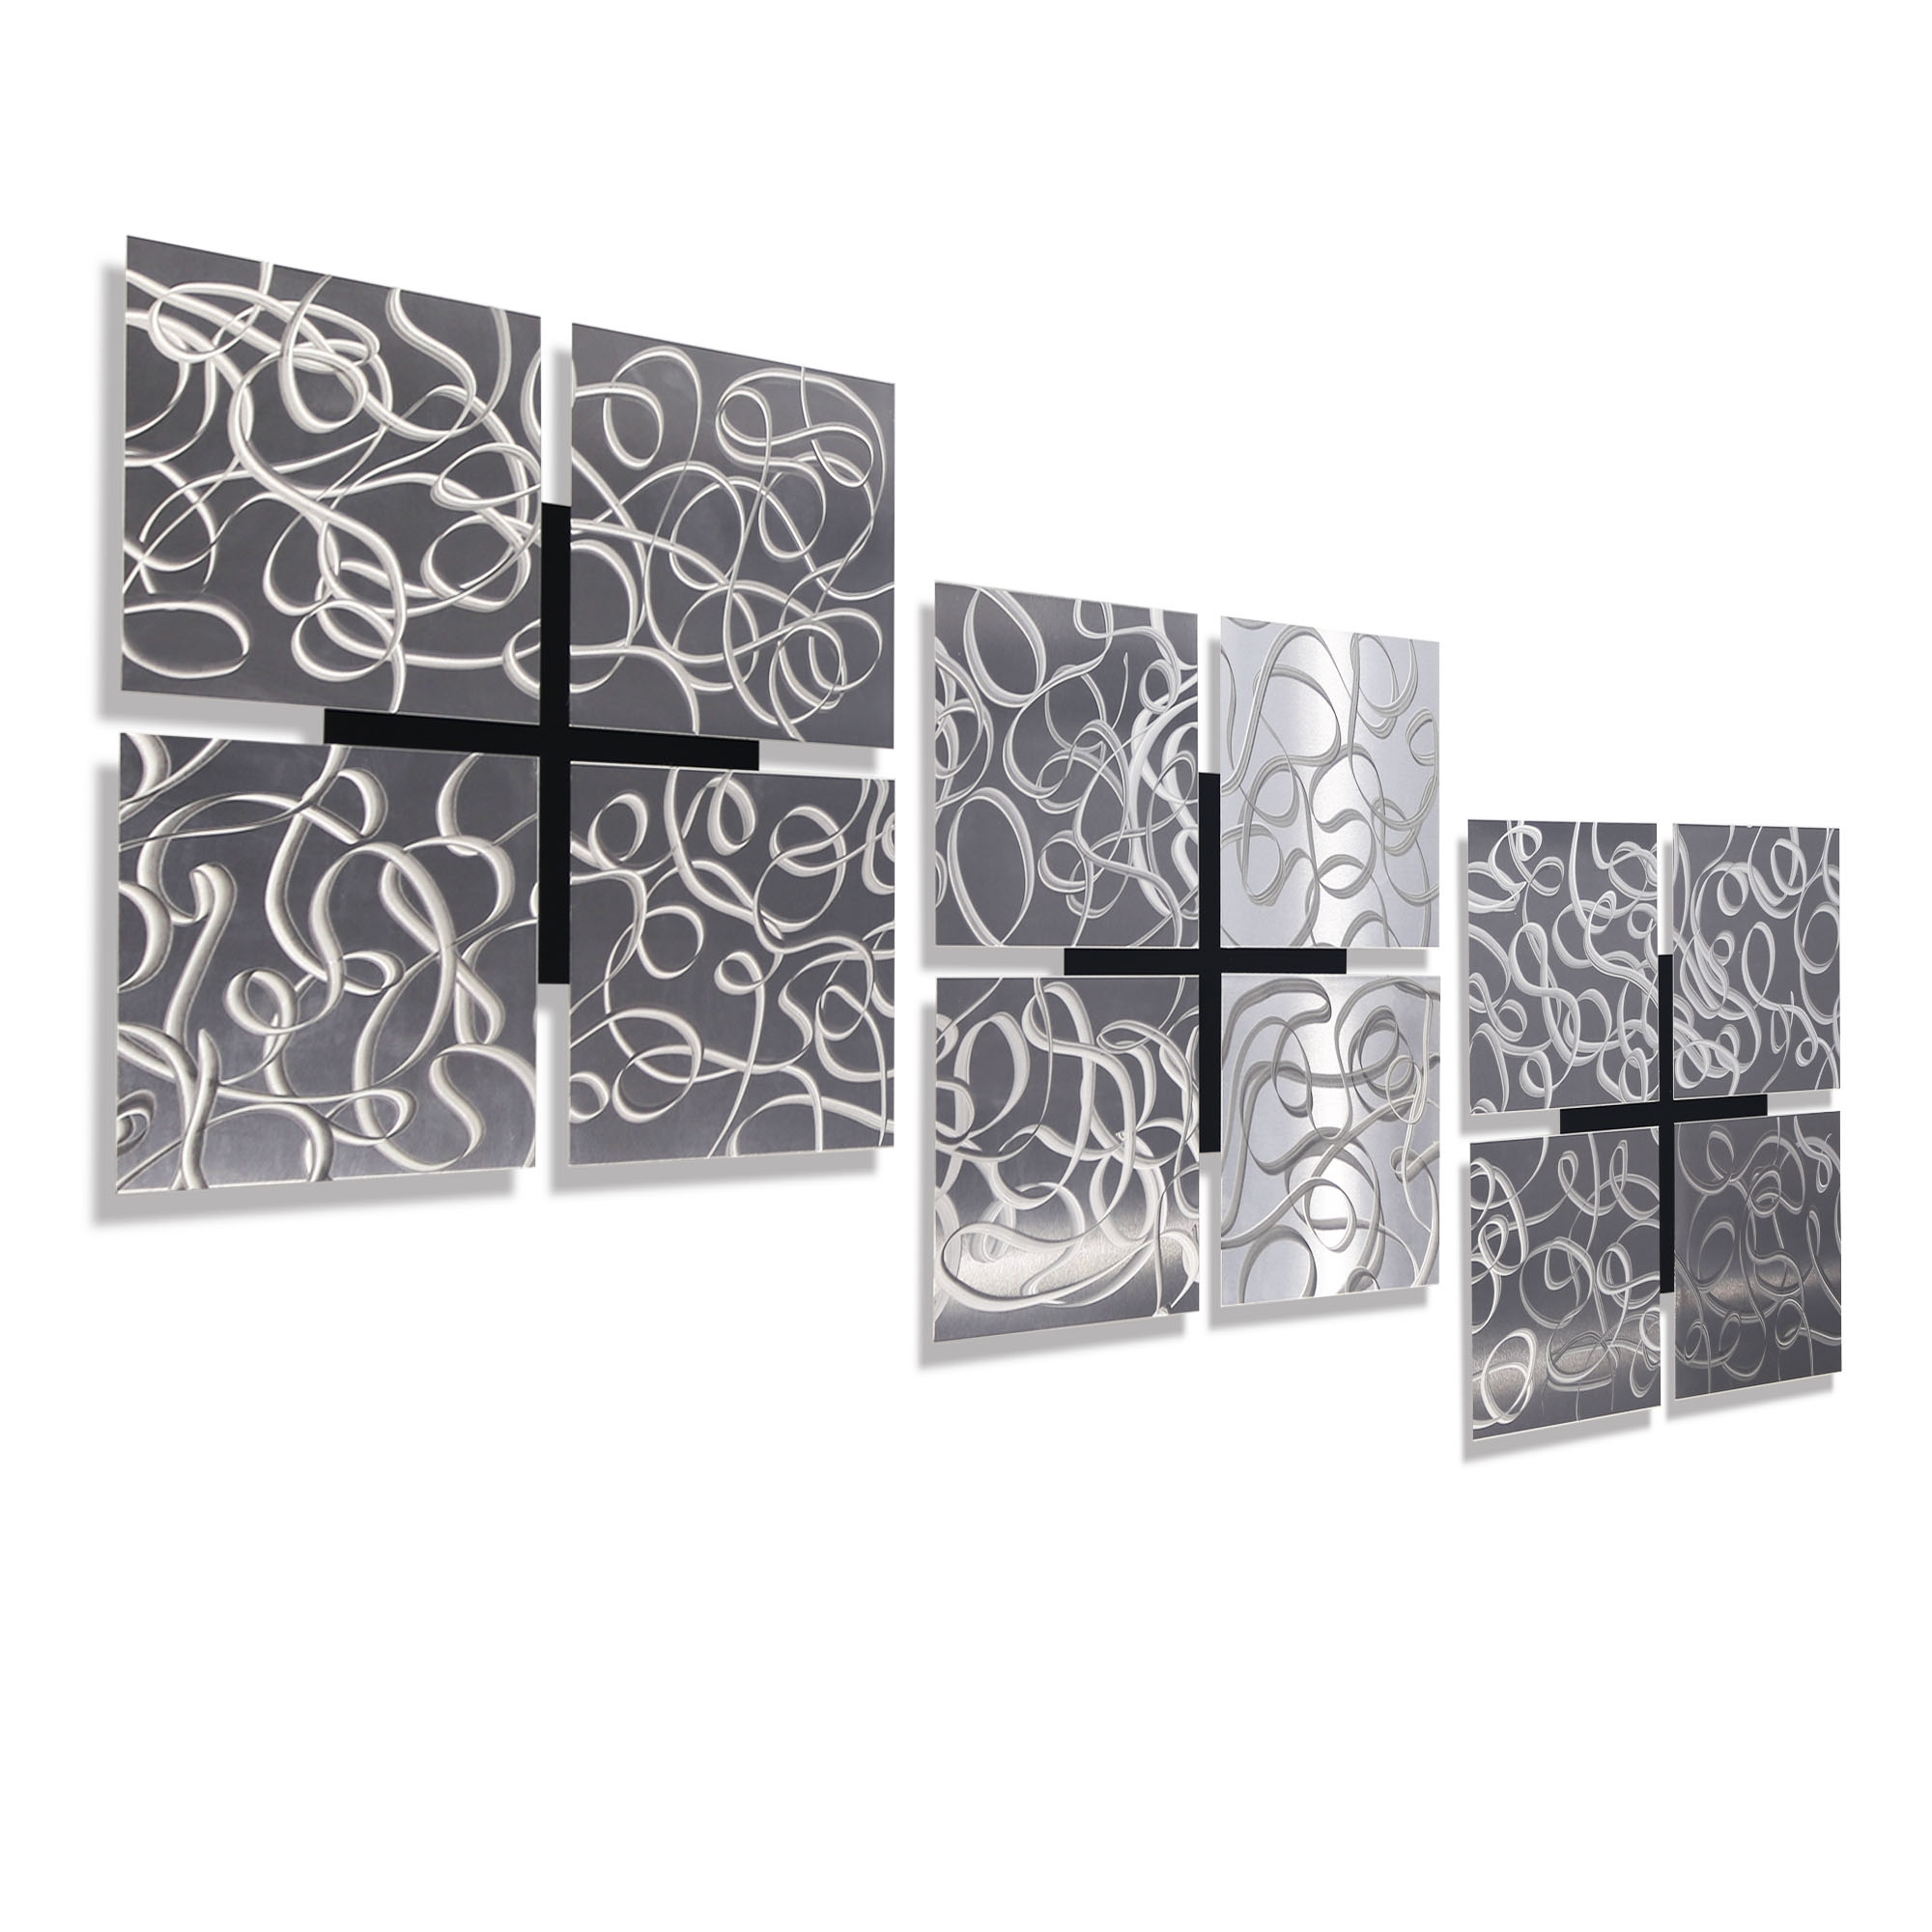 "3 Kings – Silver Set Of Three 12"" X 12"" Metal Wall Art Accents Pertaining To Latest Wall Art Accents (Gallery 9 of 15)"